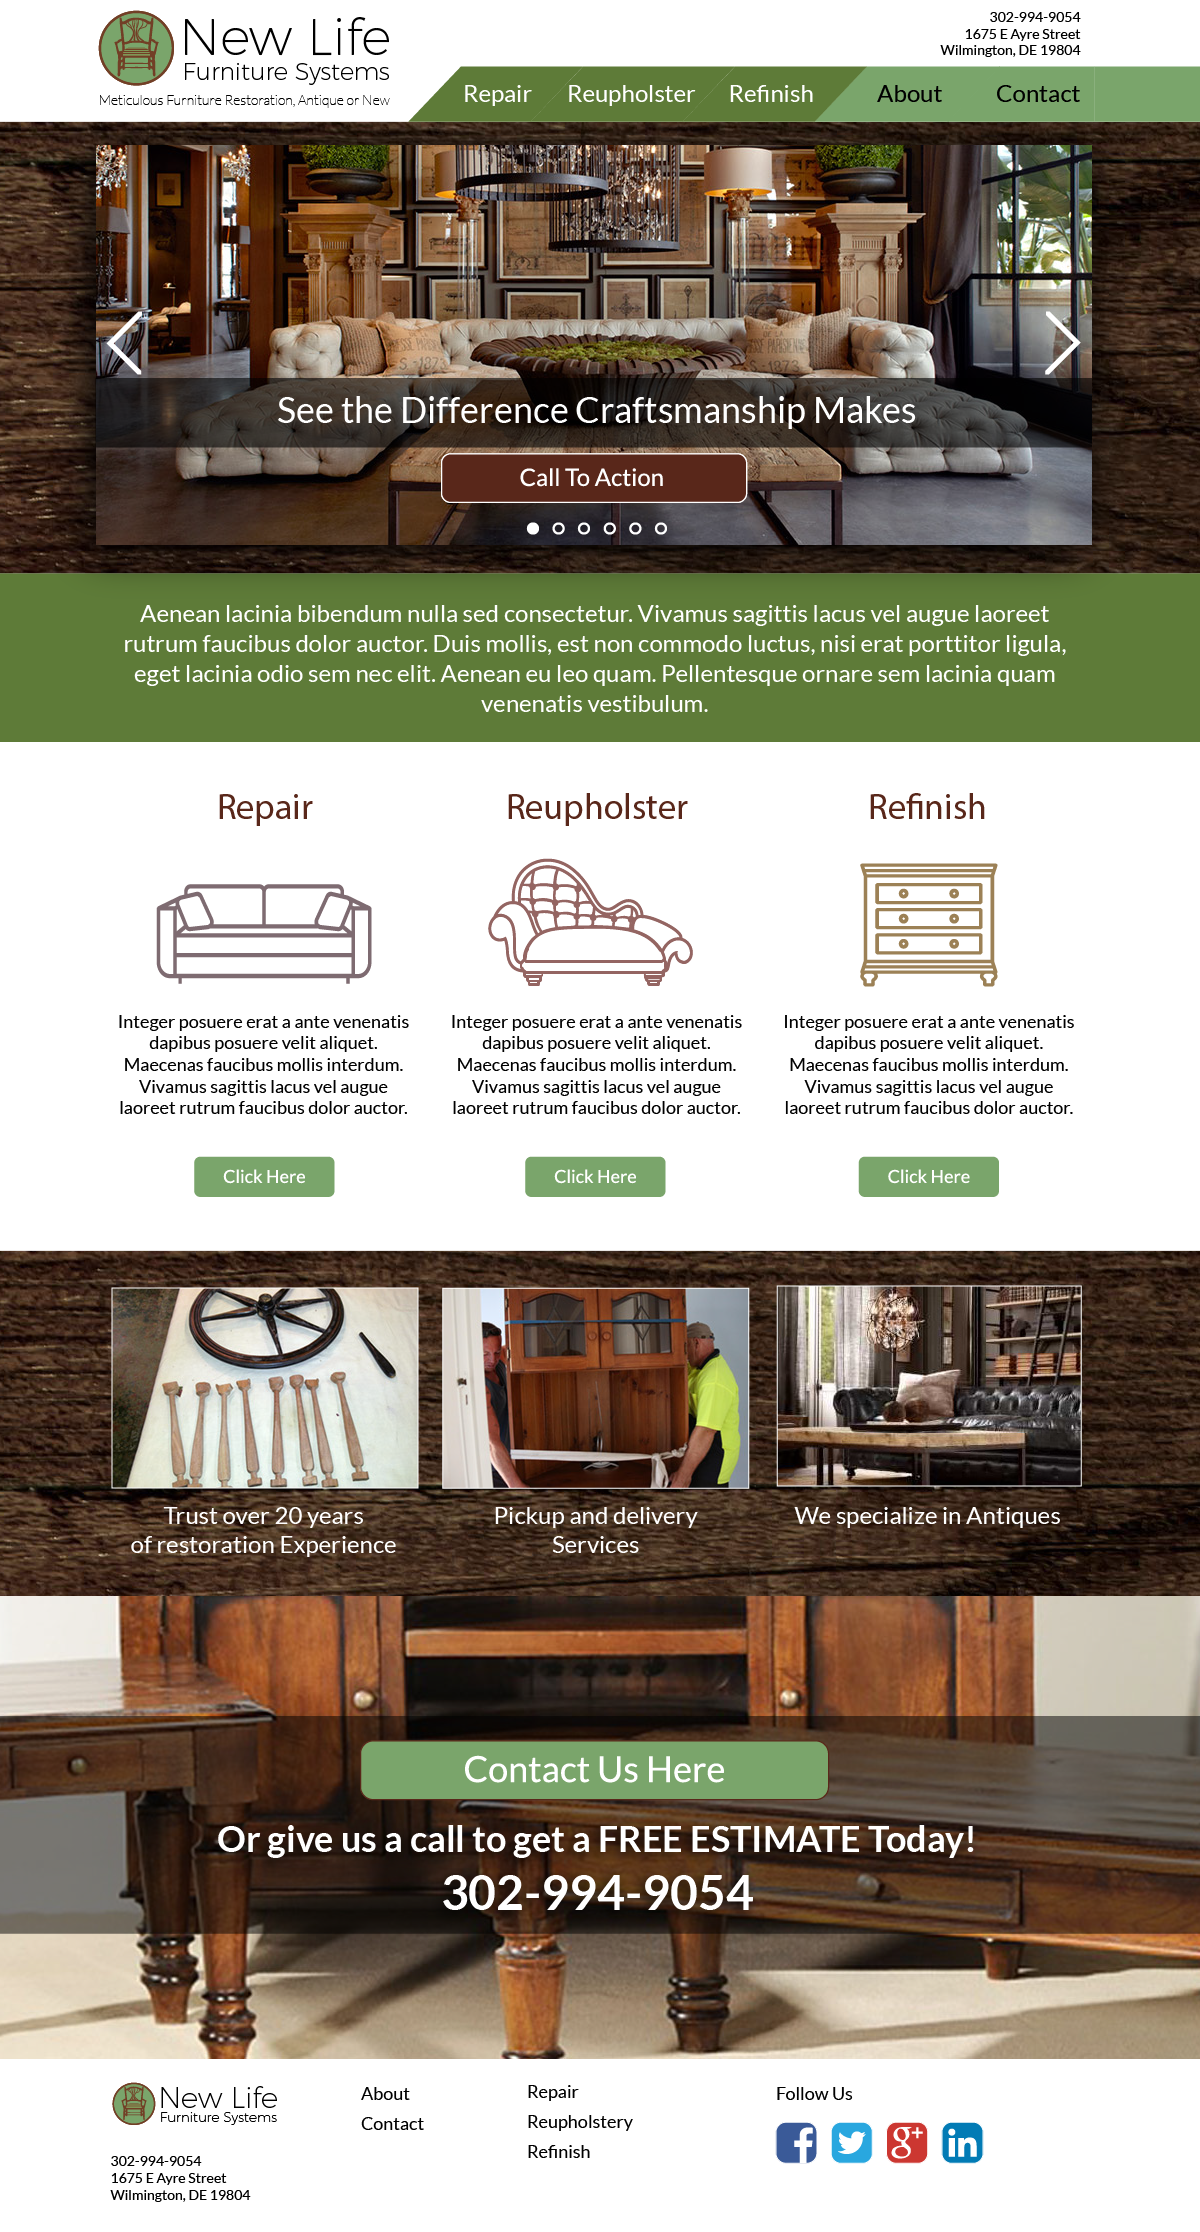 New Life Furniture Systems Full Page Scroll Image